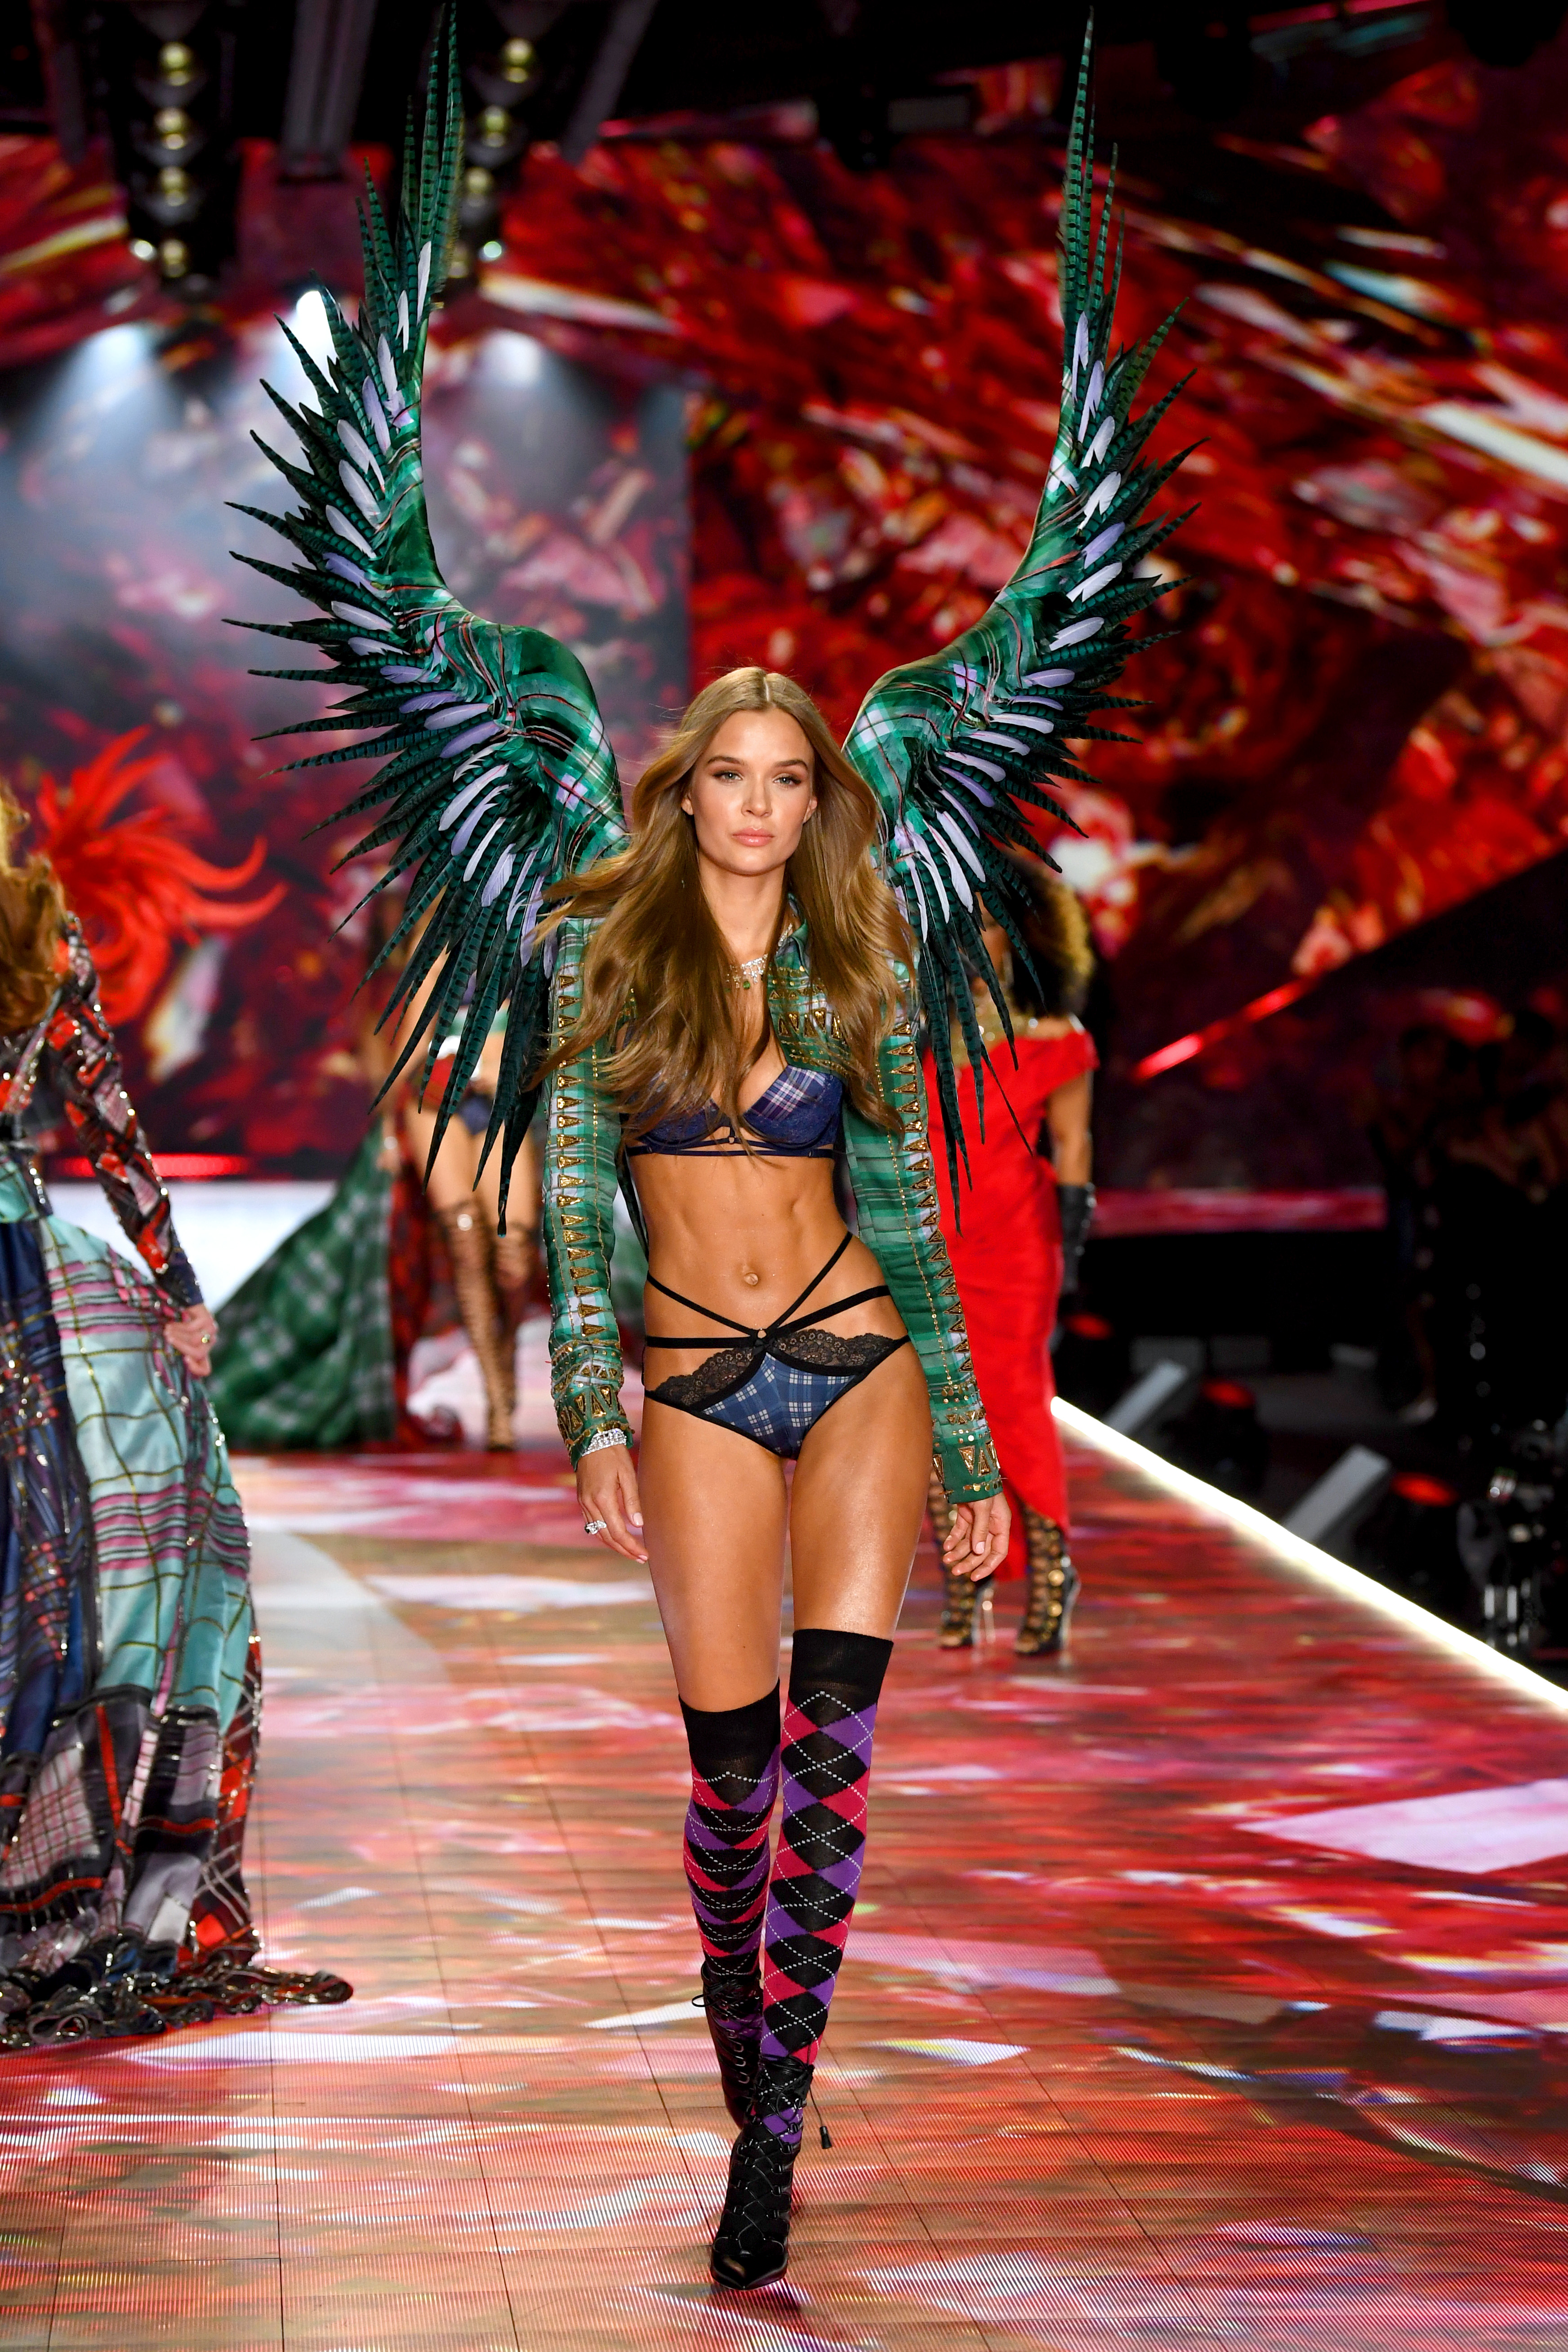 Josephine Skriver walks the runway during the 2018 Victoria's Secret Fashion Show at Pier 94 on November 8, 2018, in New York City. (Getty Images)